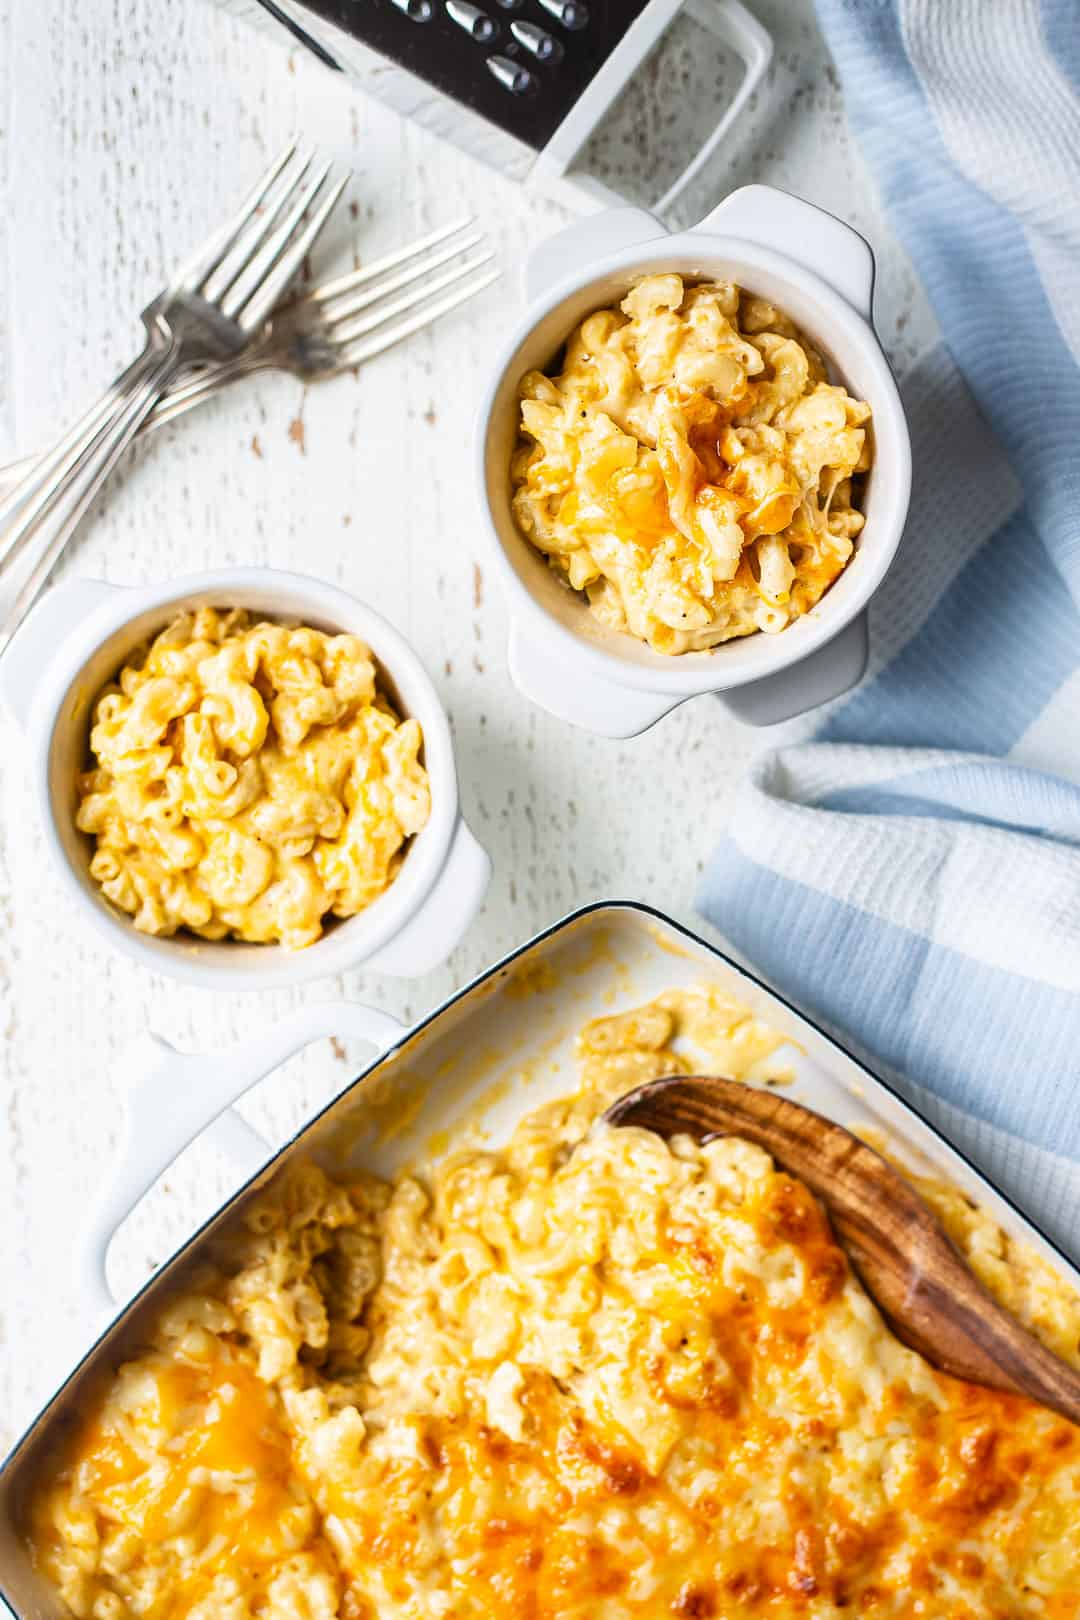 Overhead image of baked macaroni and cheese recipes, spooned from the baking dish into individual bowls.